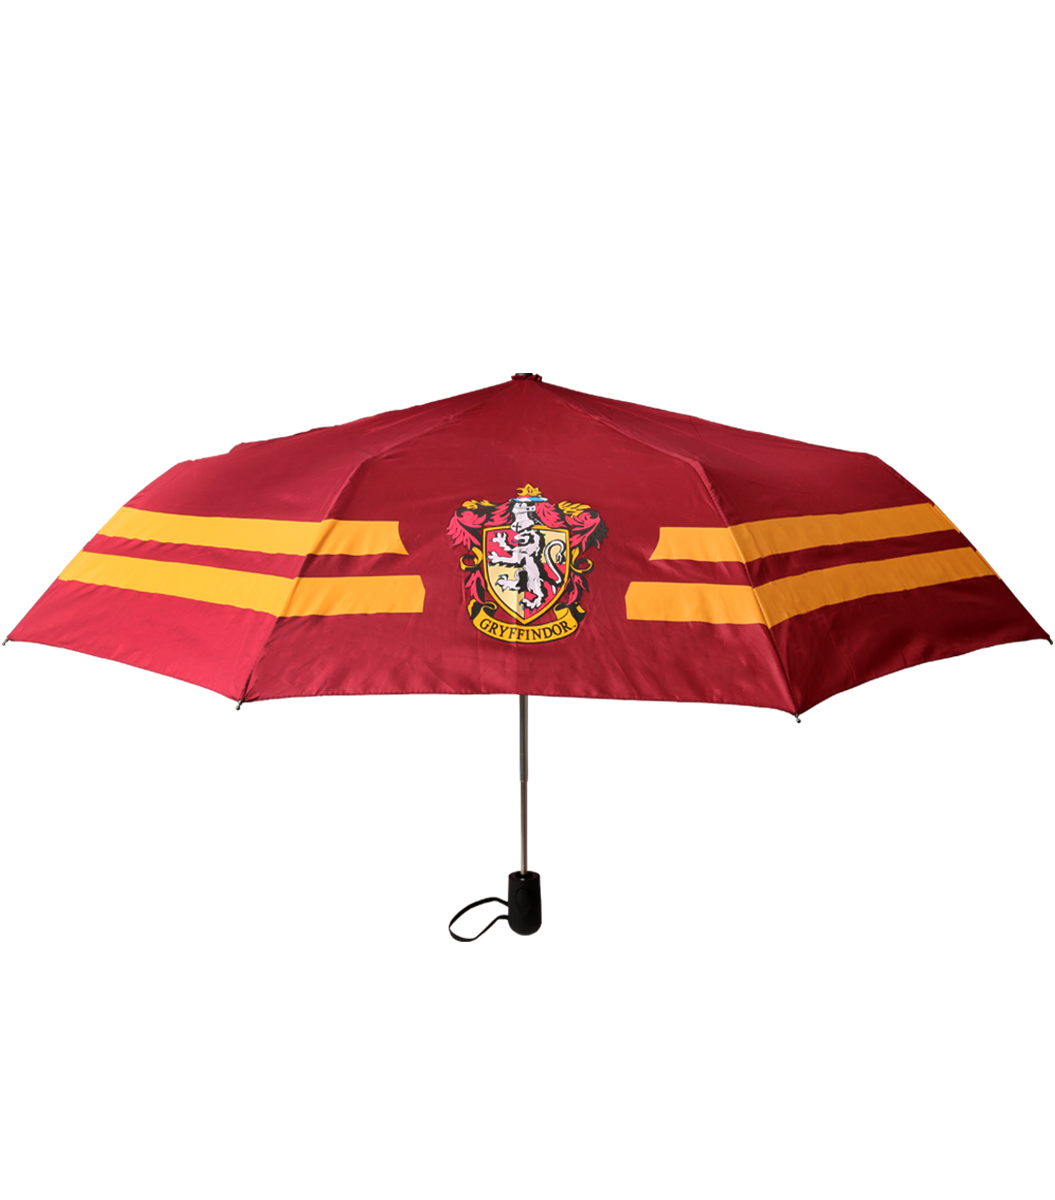 https://cdn.shopify.com/s/files/1/0221/1146/products/Gryffindor_Umbrella.png?v=1511177243